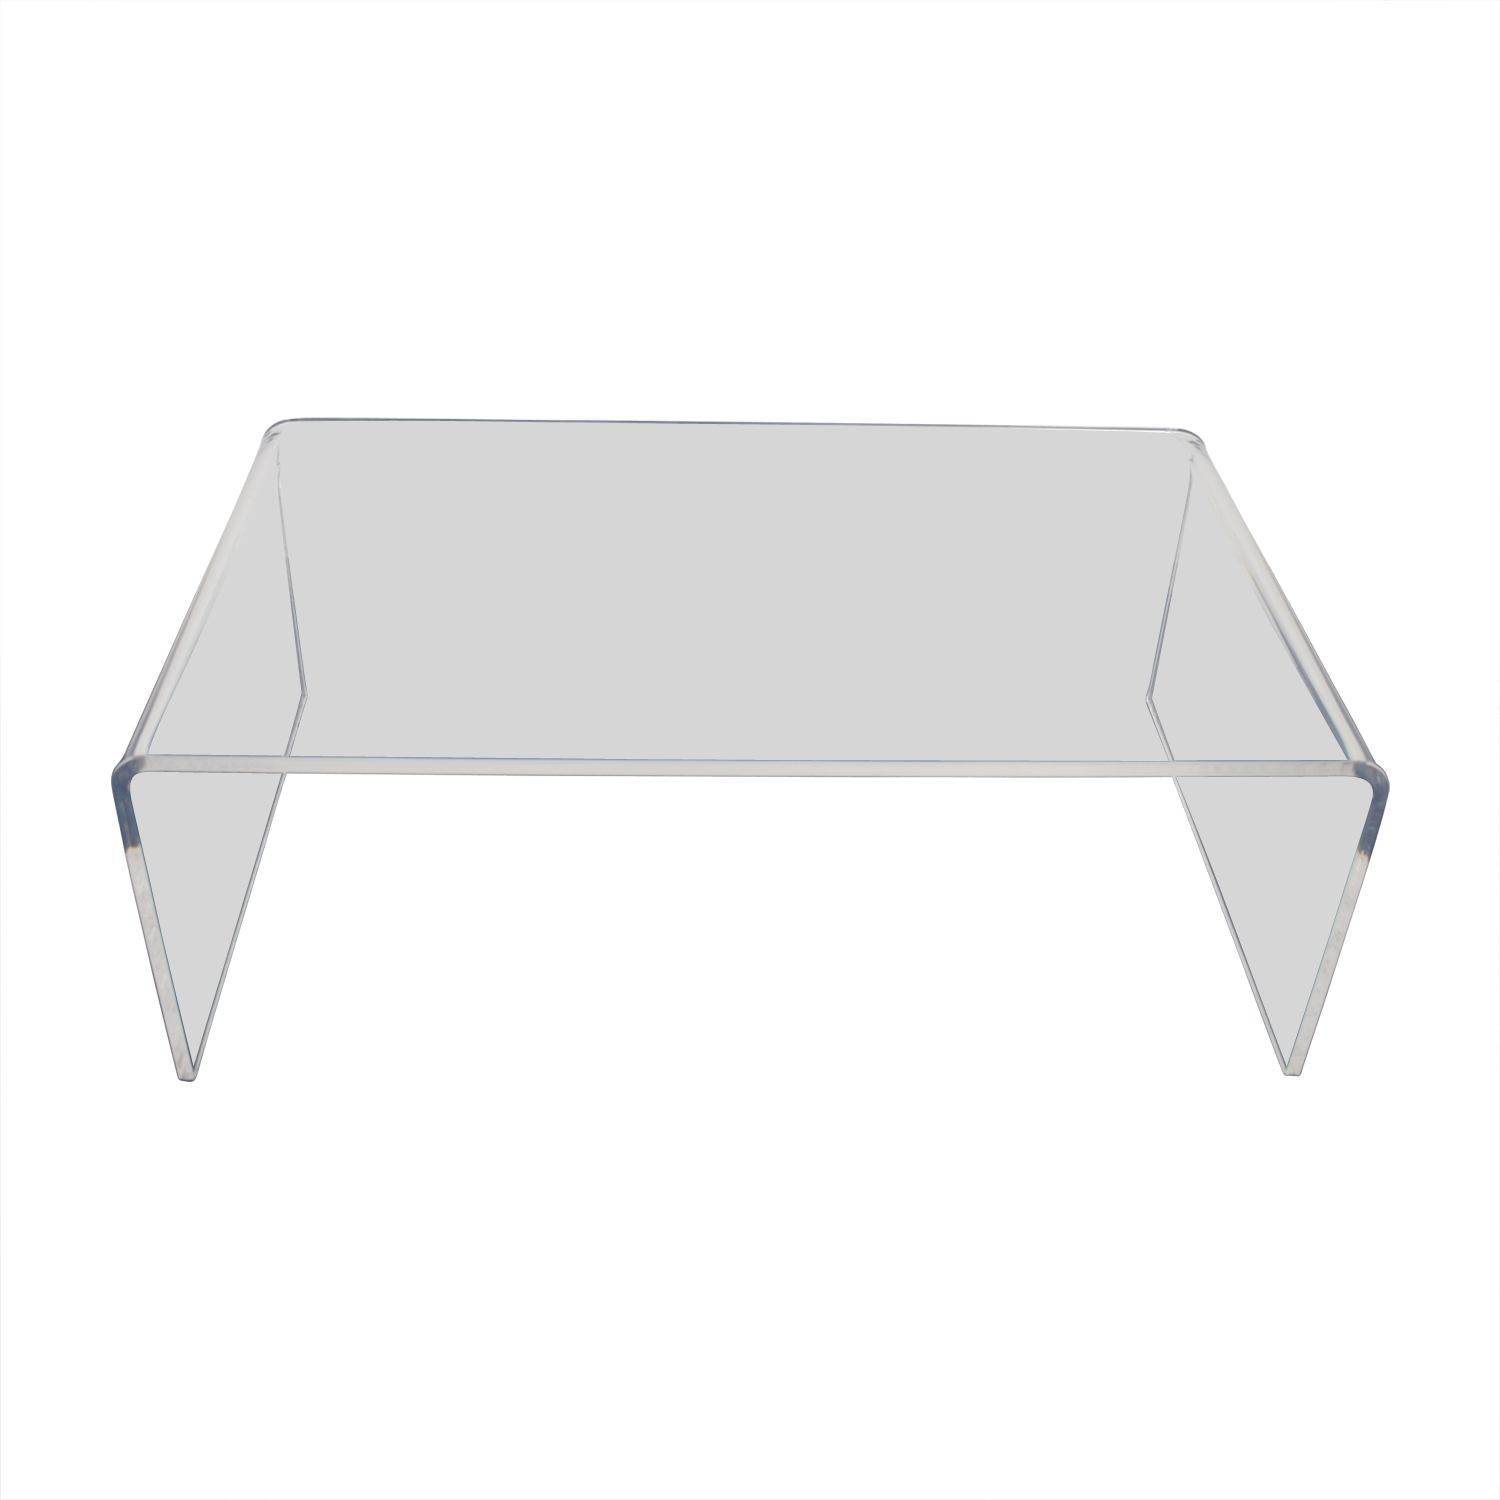 CB2 Peekaboo Acrylic Coffee Table / Tables